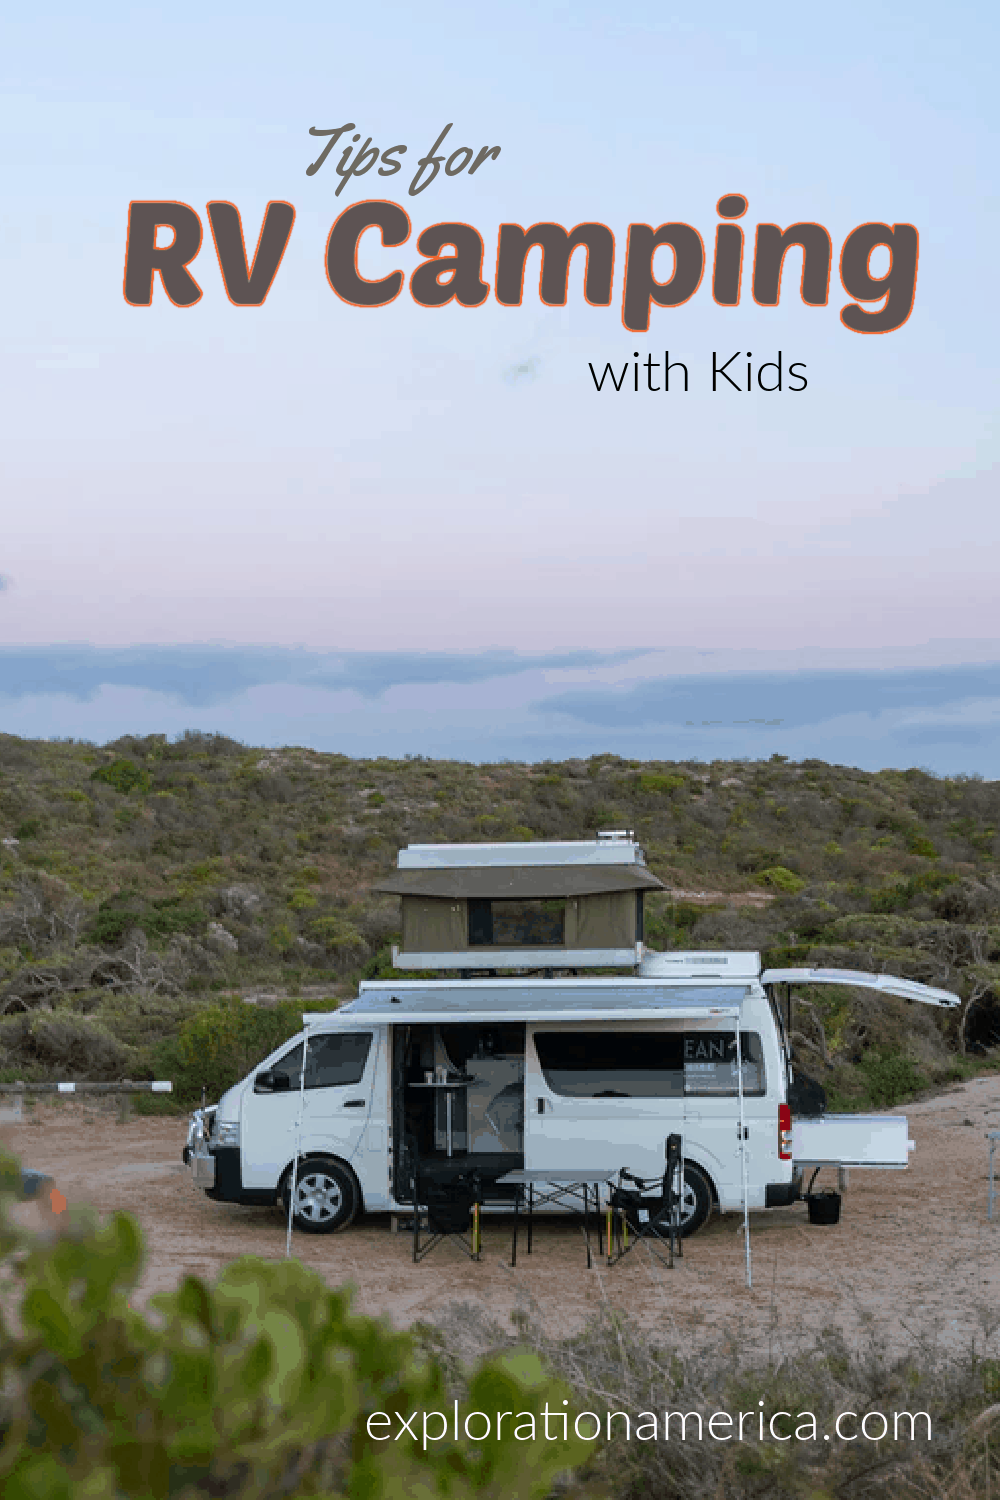 open RV camping with kids